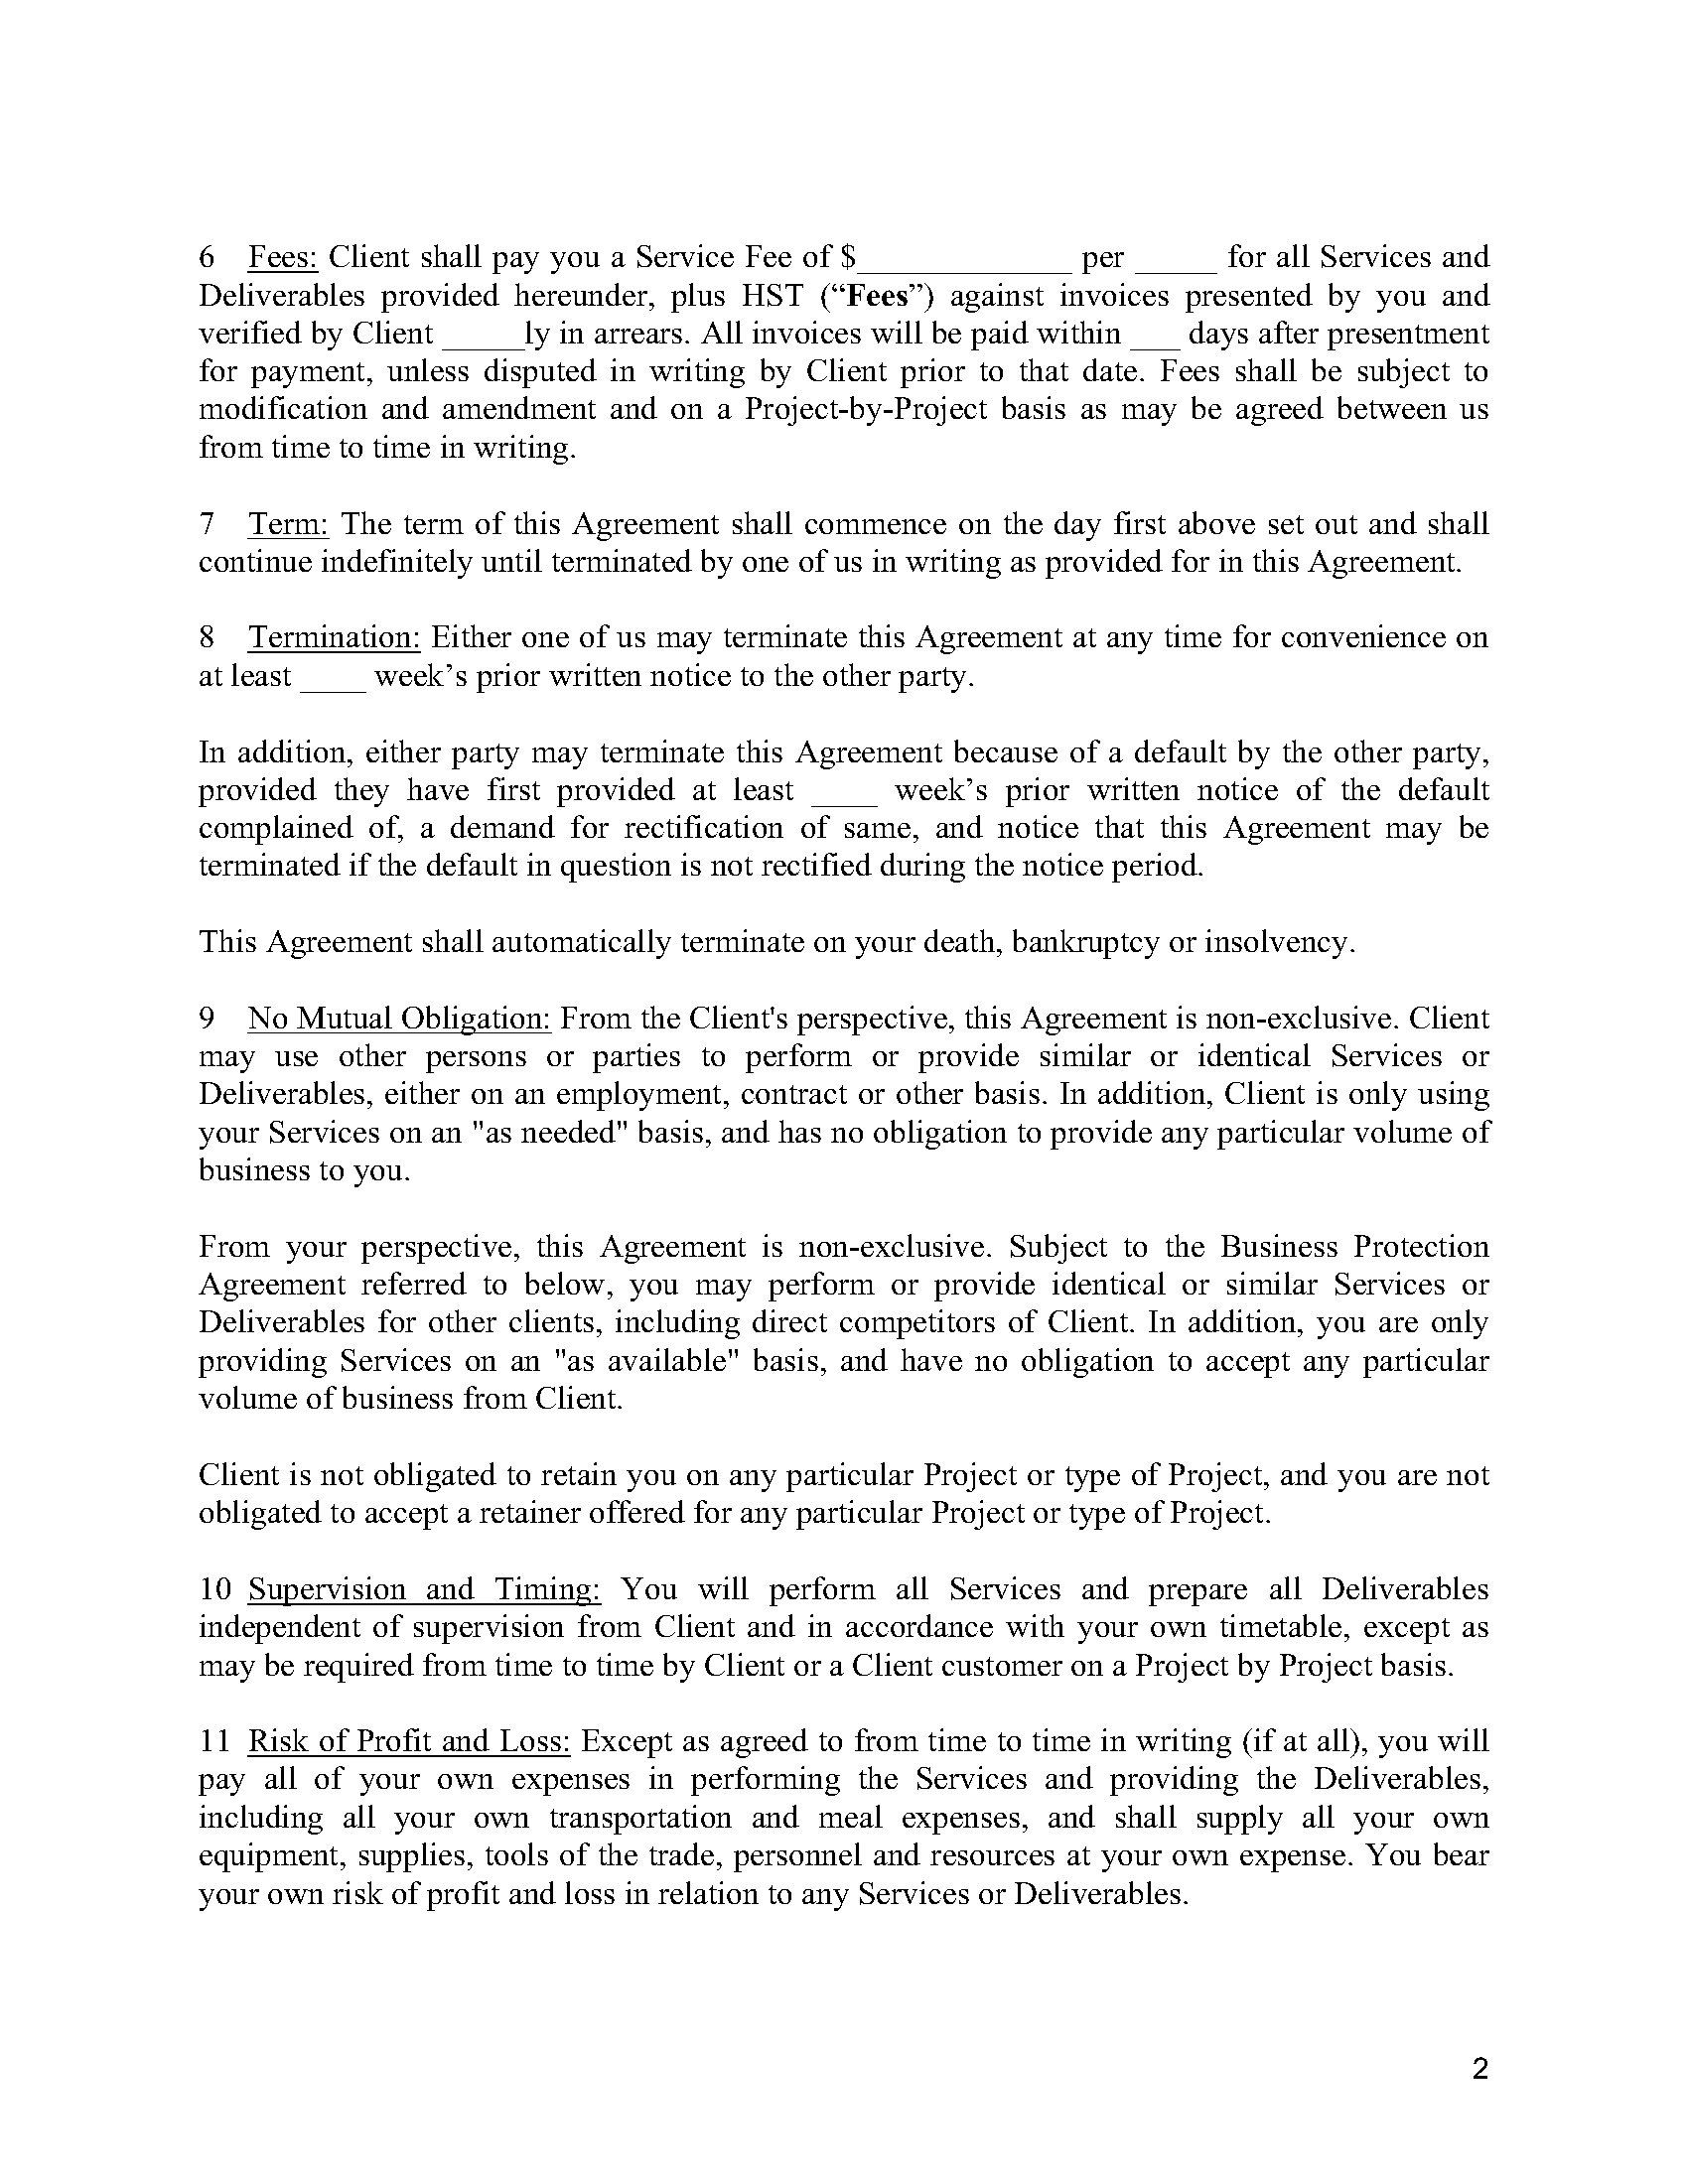 Ontario independent contractor agreement legal forms and picture of ontario independent contractor agreement picture of ontario independent contractor agreement pronofoot35fo Image collections